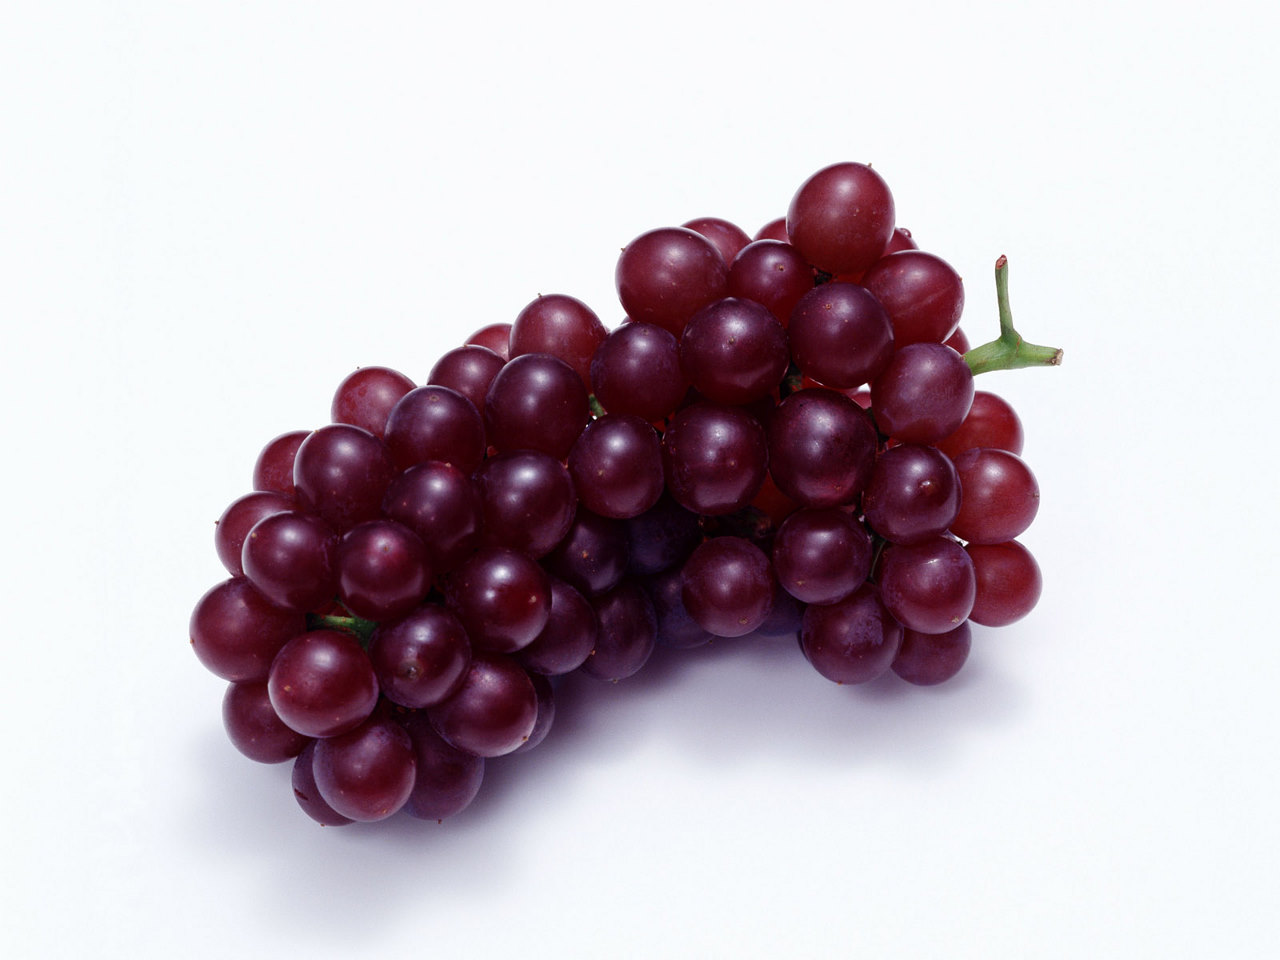 Http Navigatingnaturopathy Blogspot Com 2012 09 The Whole Grape Html